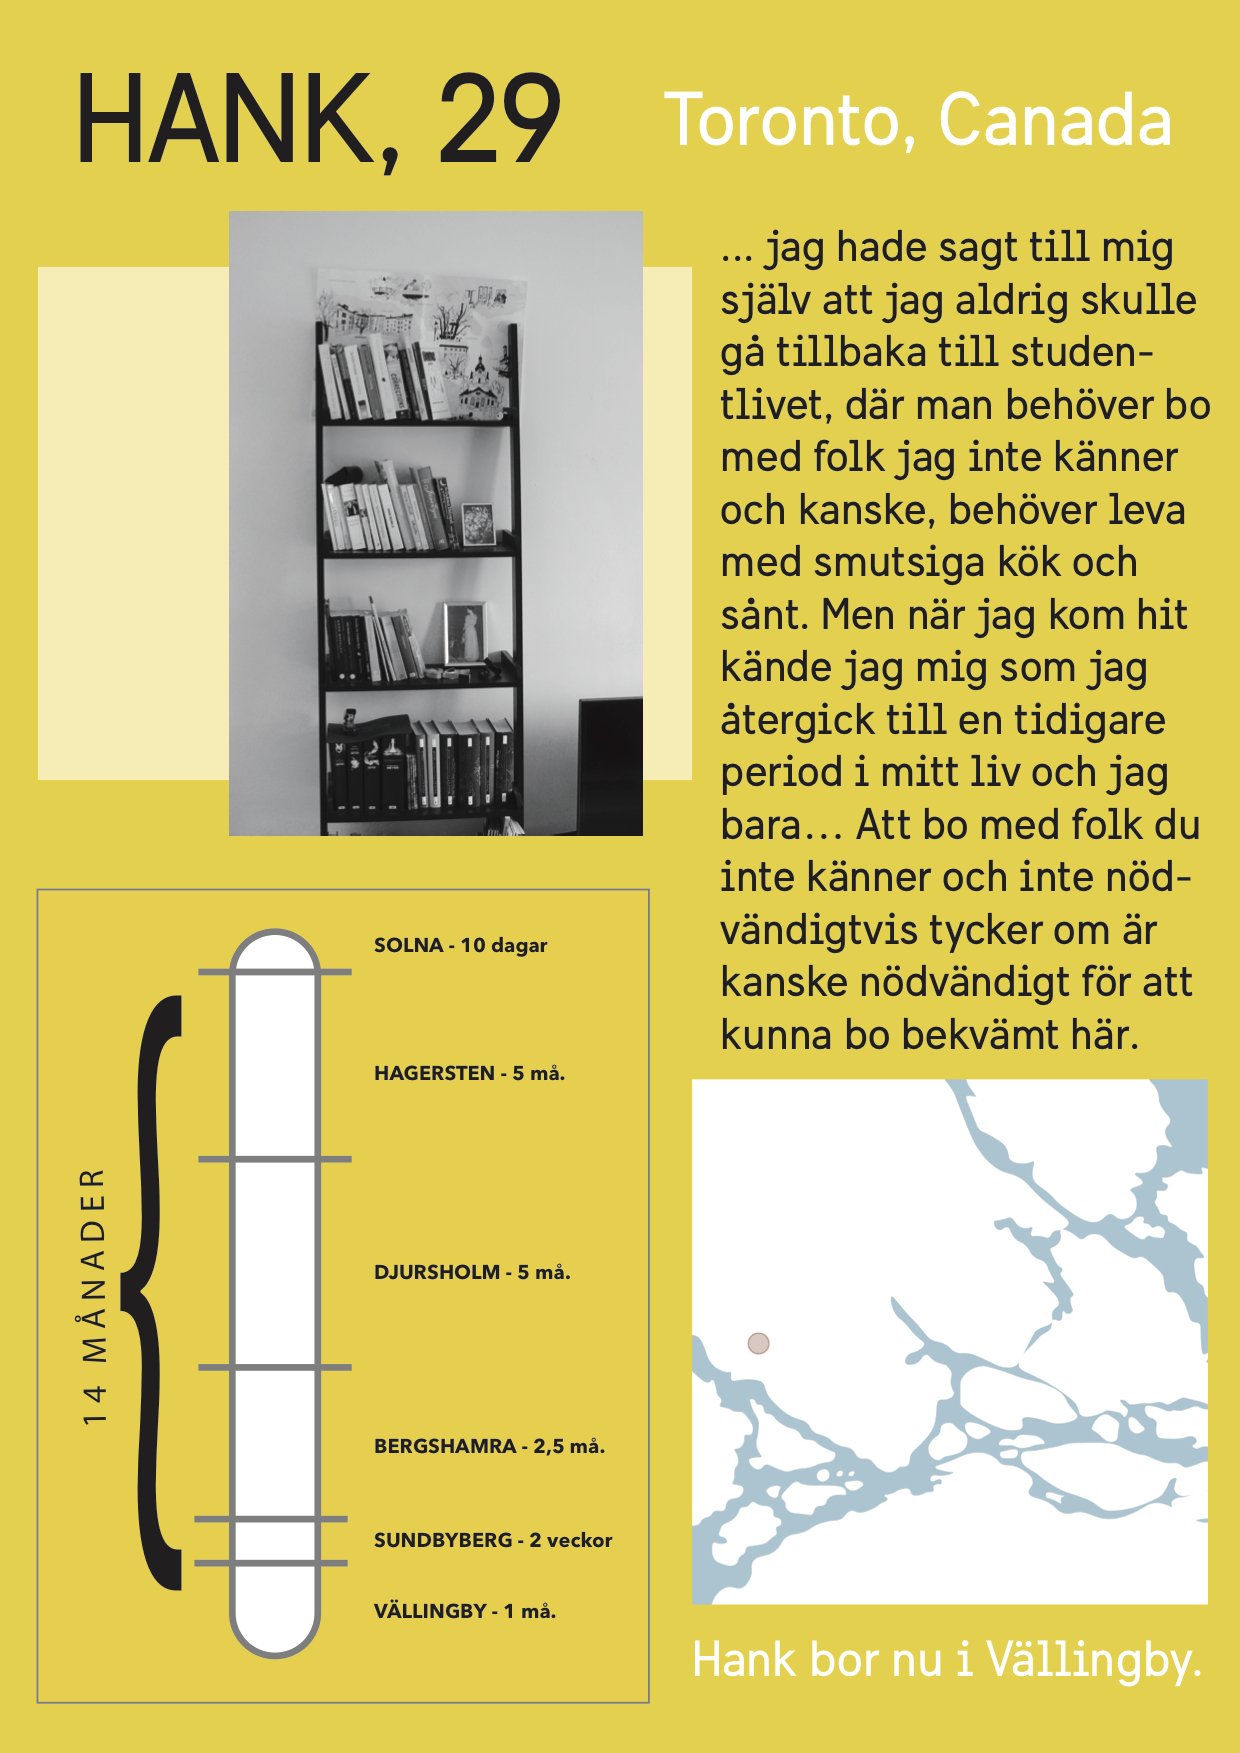 Profile of Stockholm resident for master's thesis